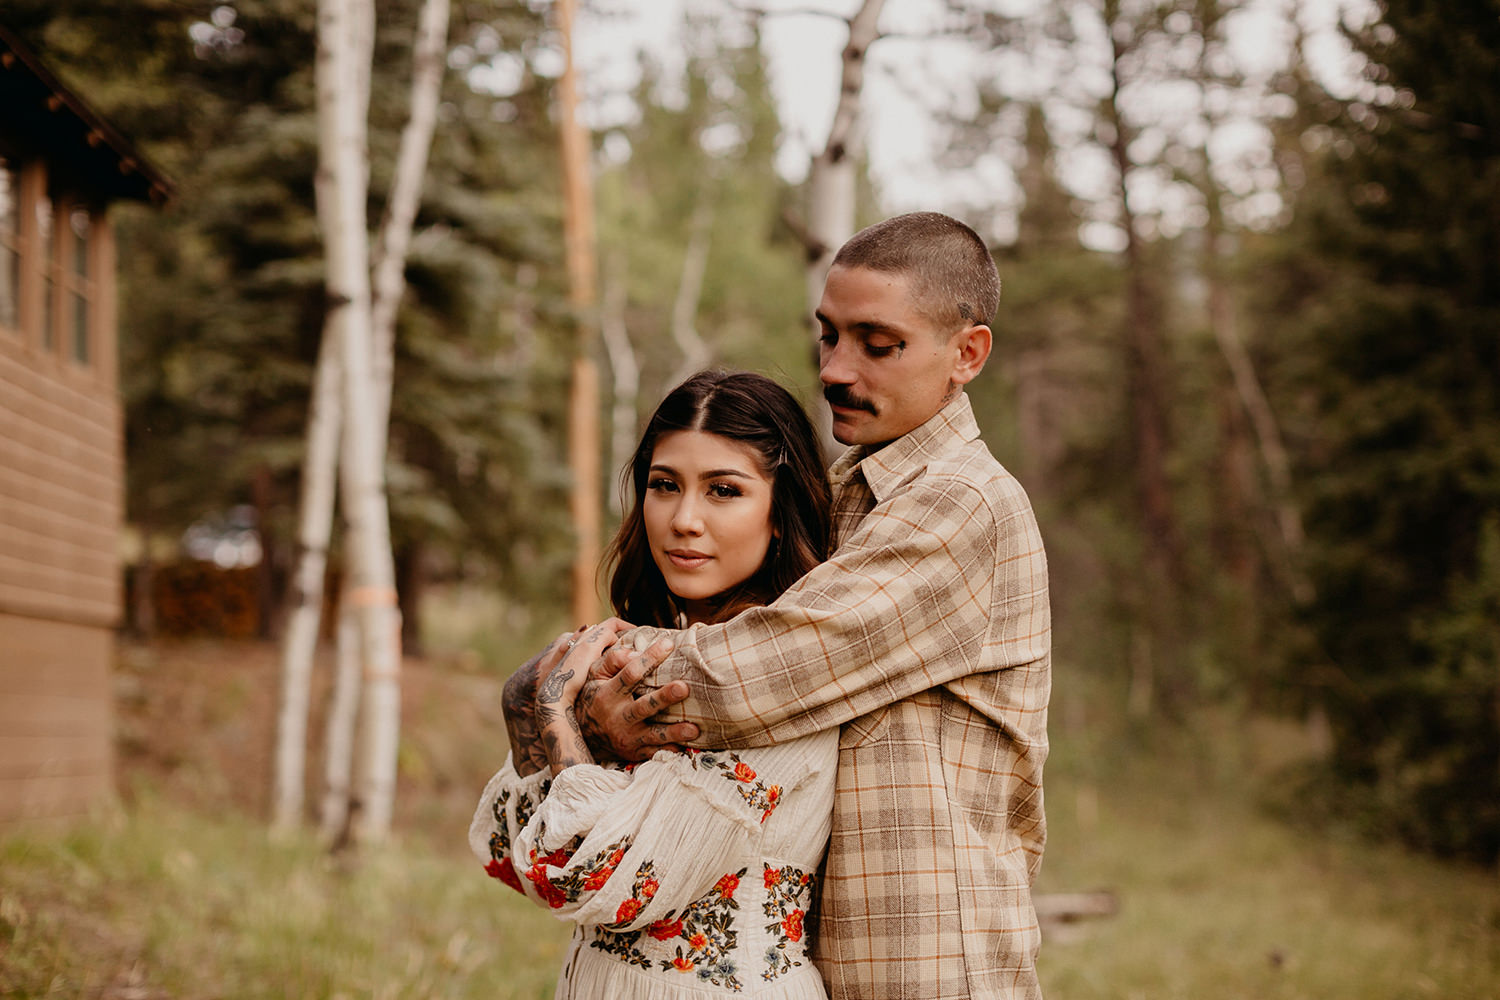 Bailey Colorado Denver Wedding Engagement Photographer Liz Osban Cheyenne Wyoming Mountain Elopement Boho bohemian vintage film tattoo non traditional tattooed rock and roll 14.jpg